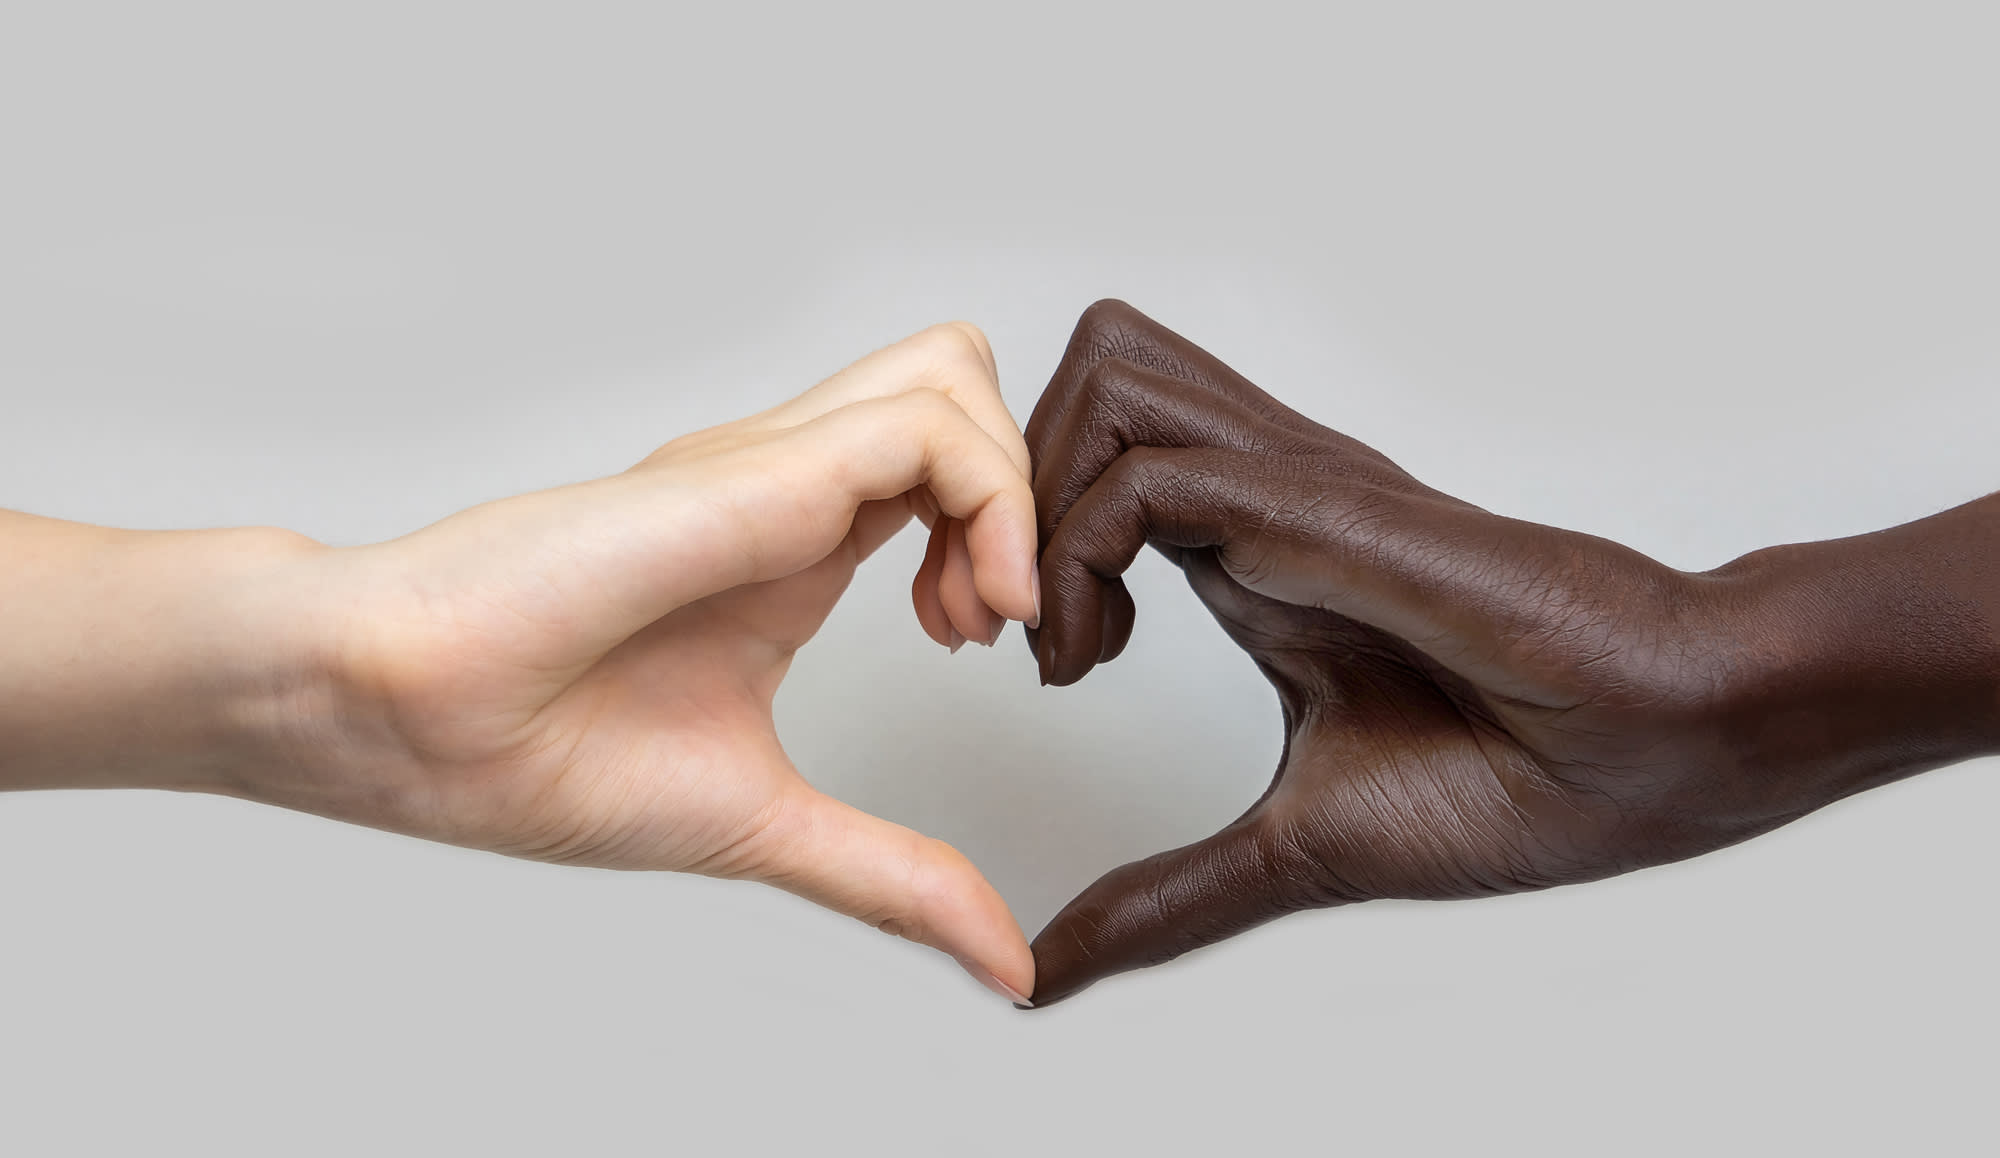 Black and white heart-shaped hands on a grey isolated background. The concept of inter-racial friendship and respect, the fight against racism